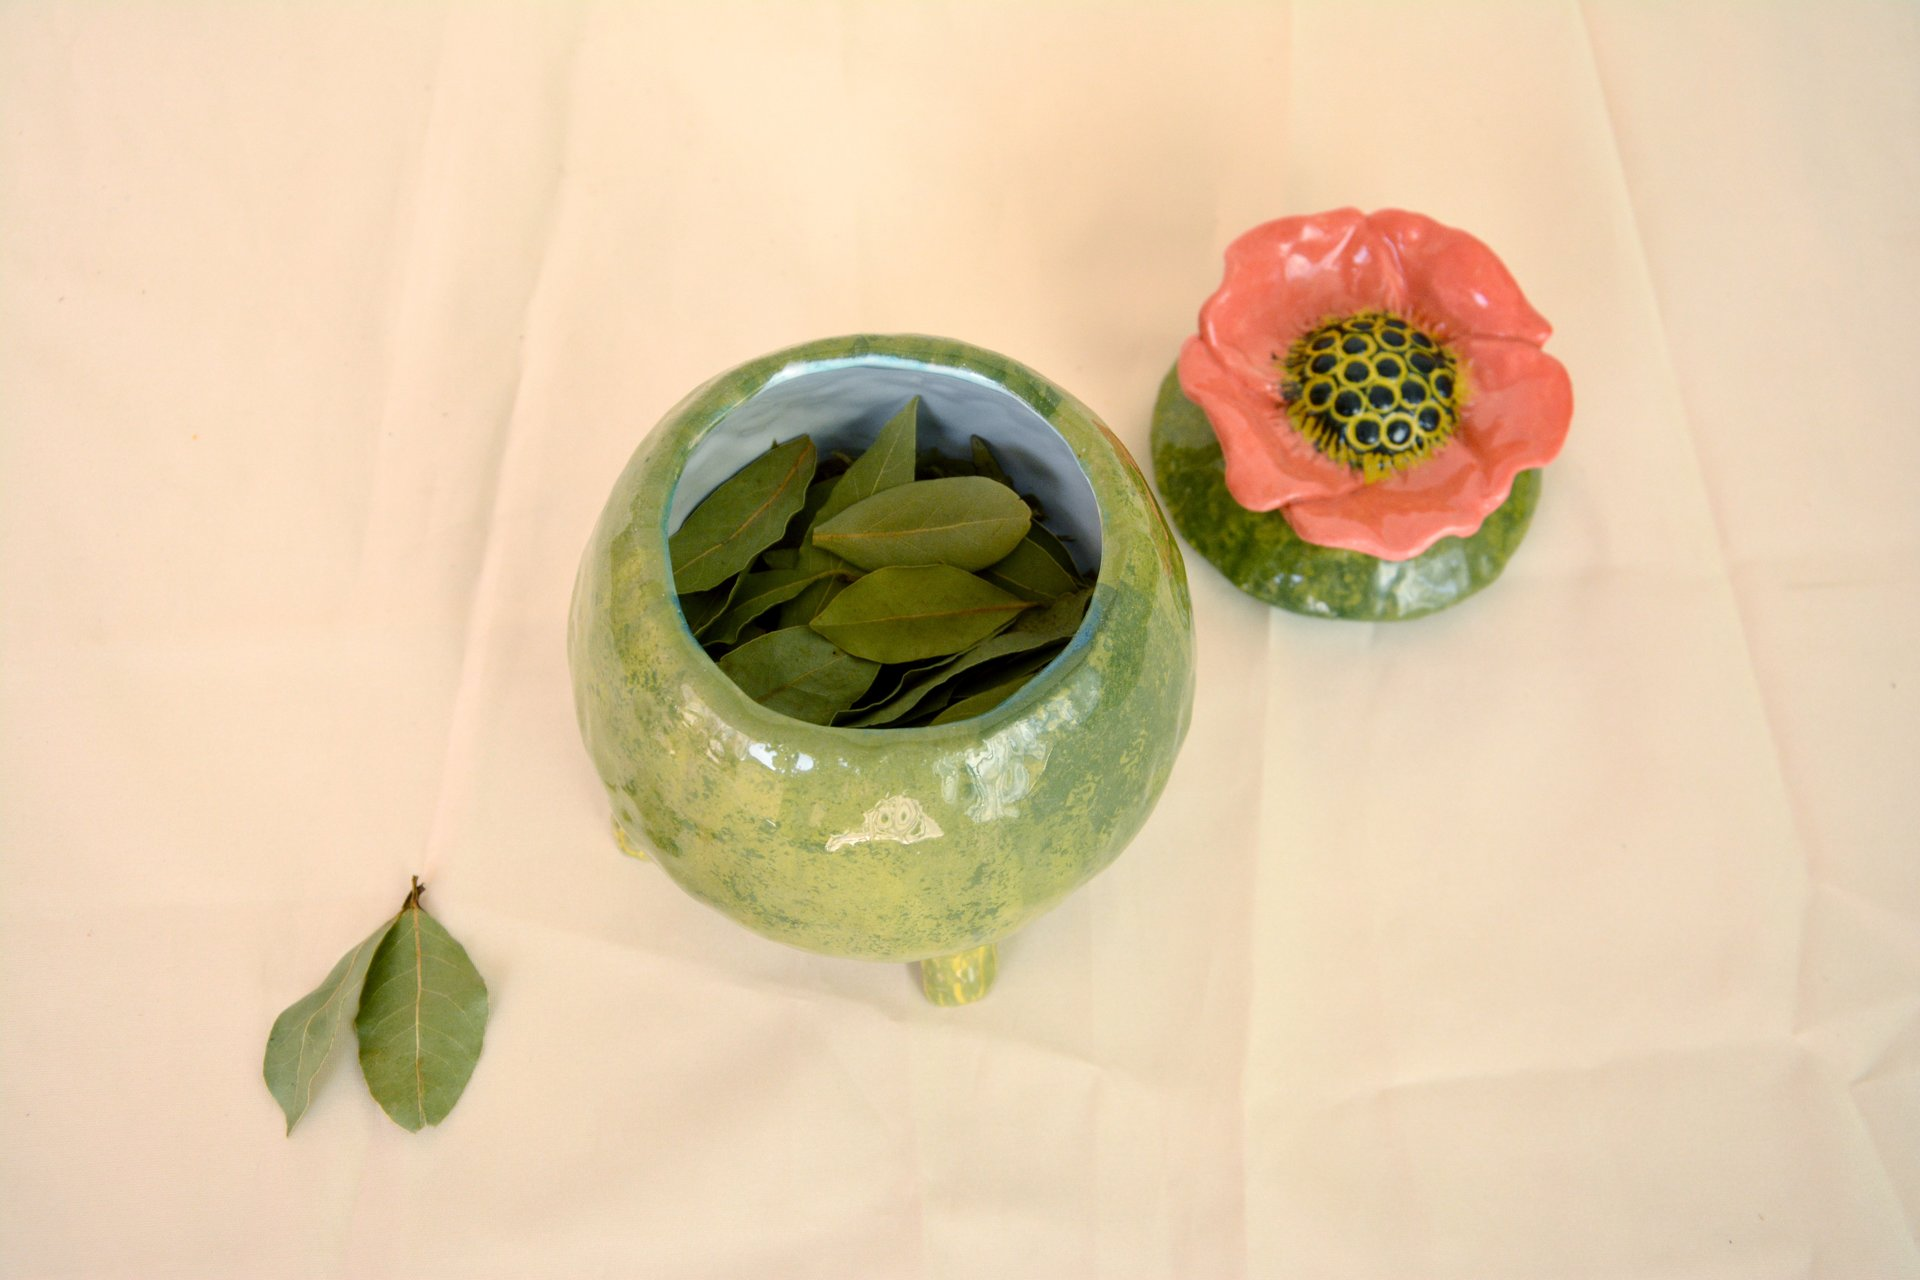 Green jar with Poppy - Ceramic jars, 12 cm * 12 cm, height - 15 cm, photo 3 of 3.